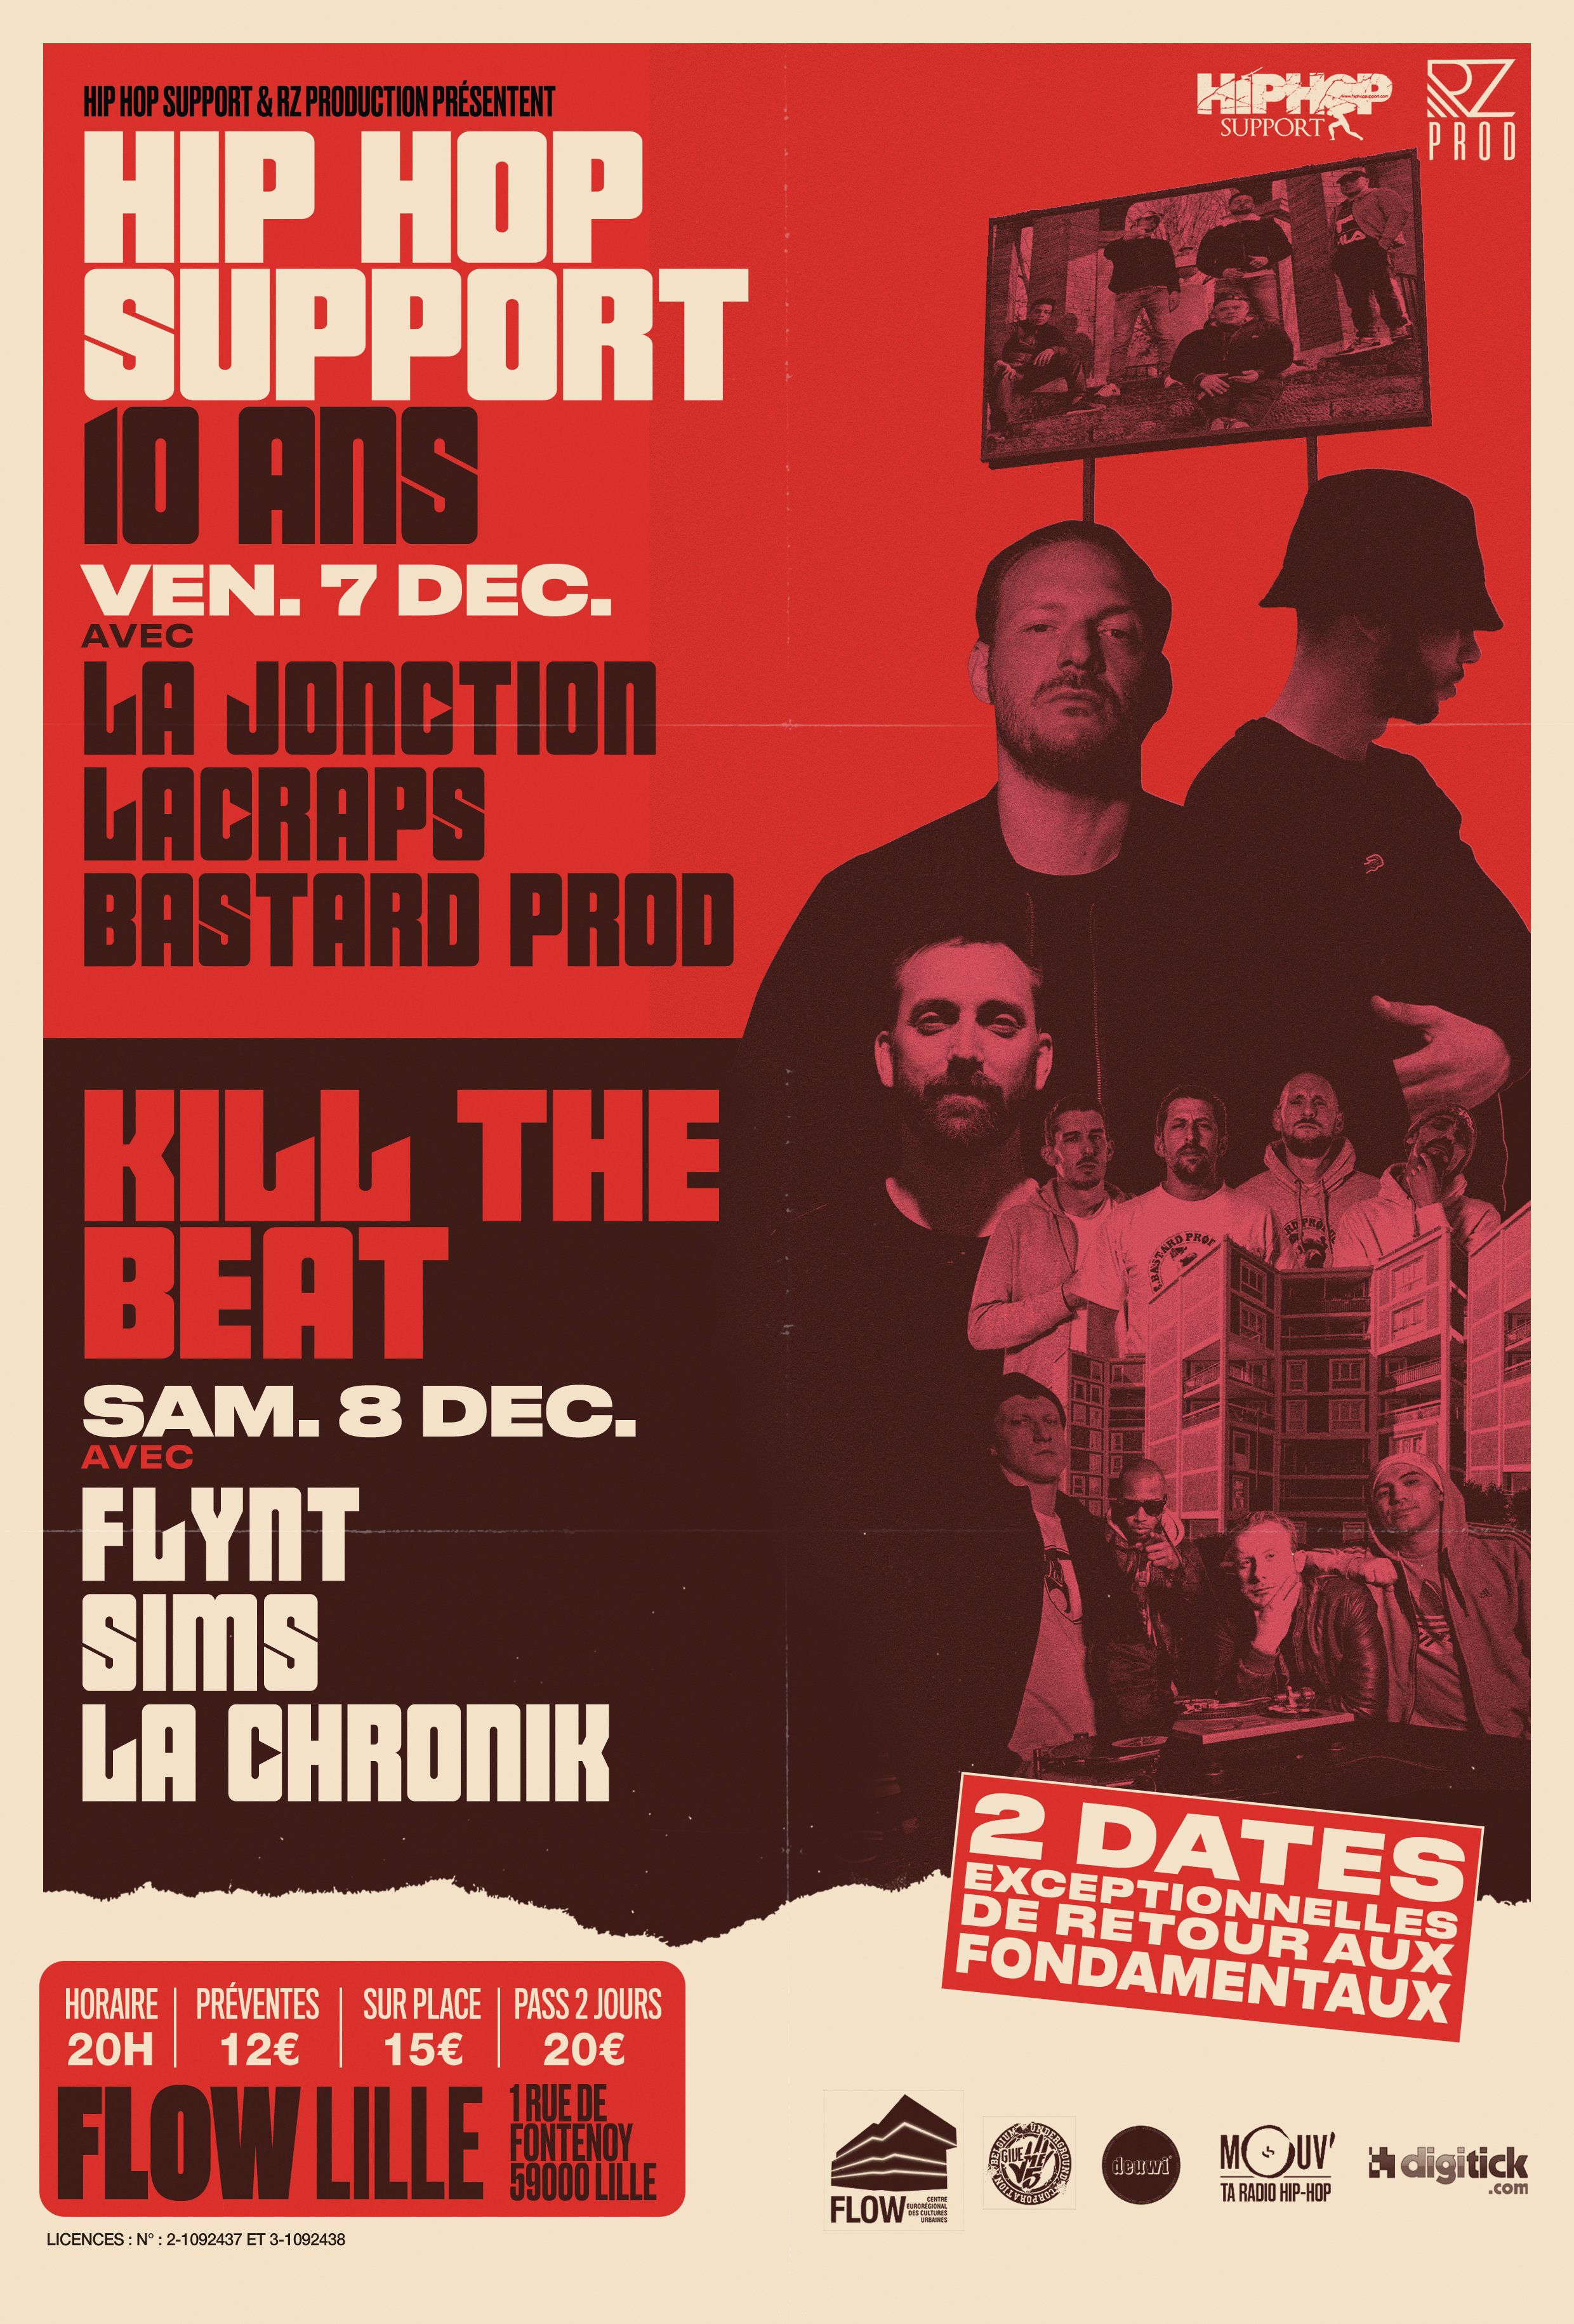 Kill The Beat #3 : La Jonction + Lacraps + Bastard Prod…